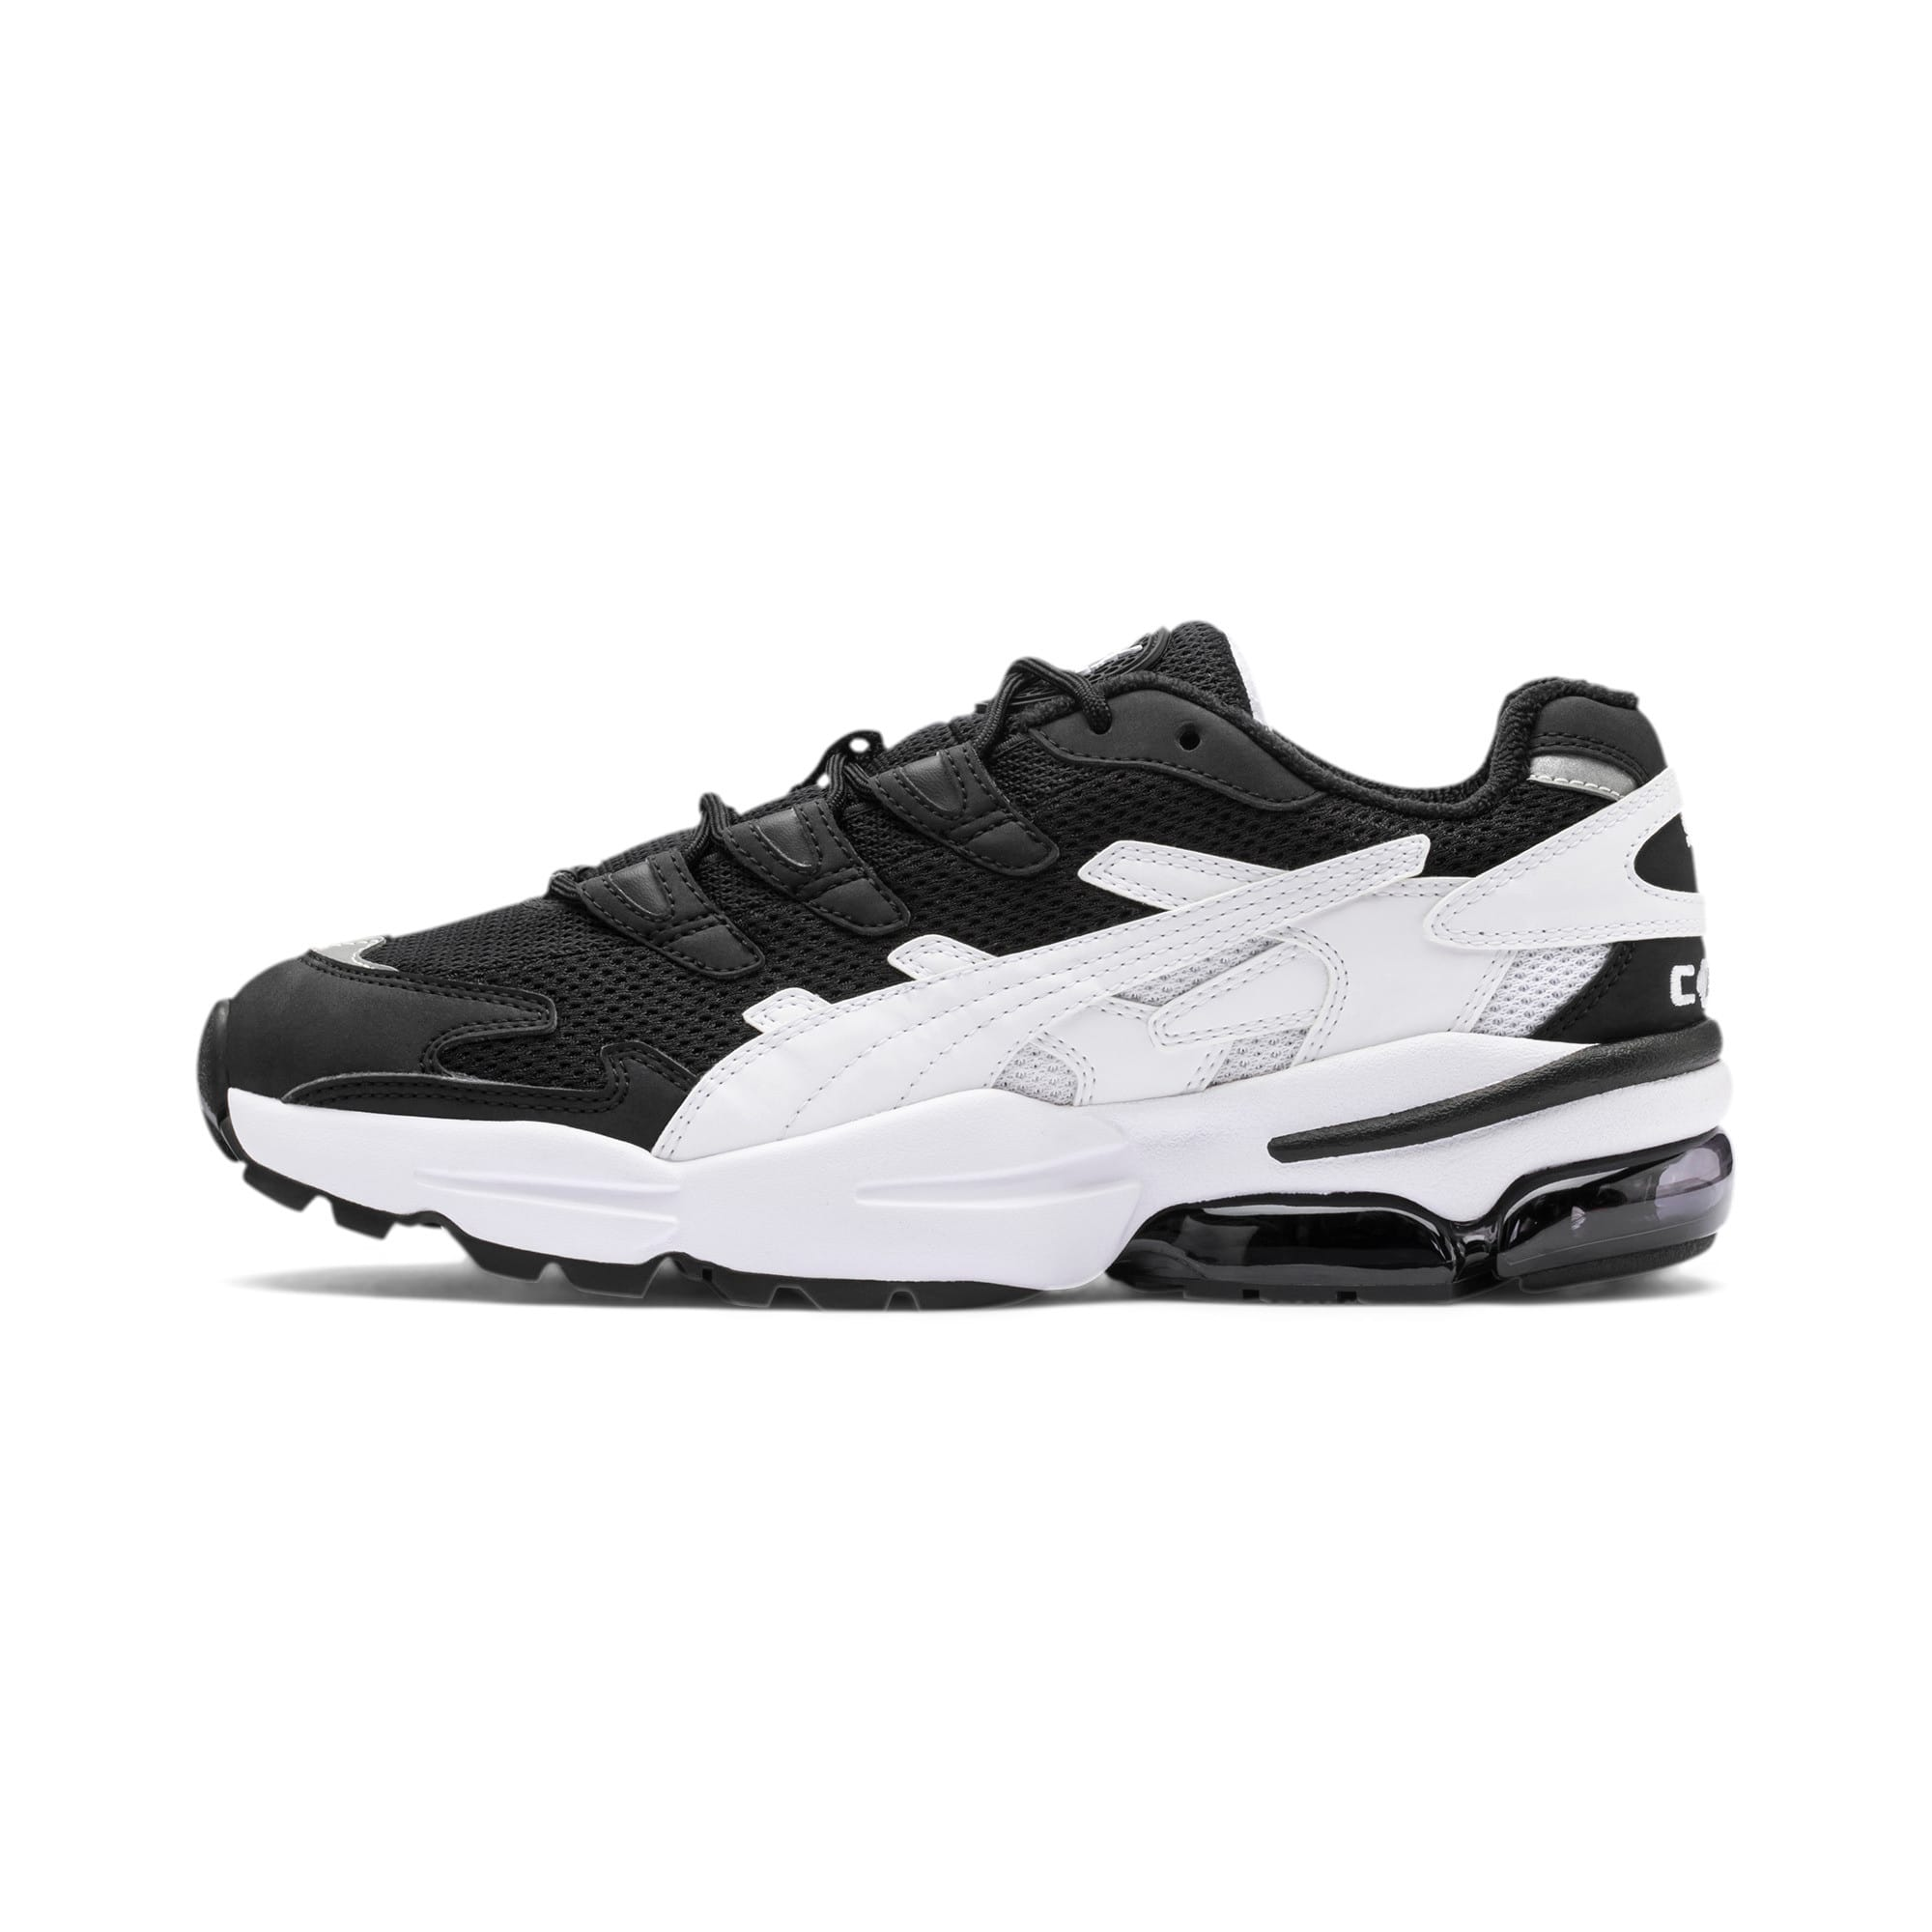 Thumbnail 1 of CELL Alien OG Sneaker, Puma Black-Puma White, medium